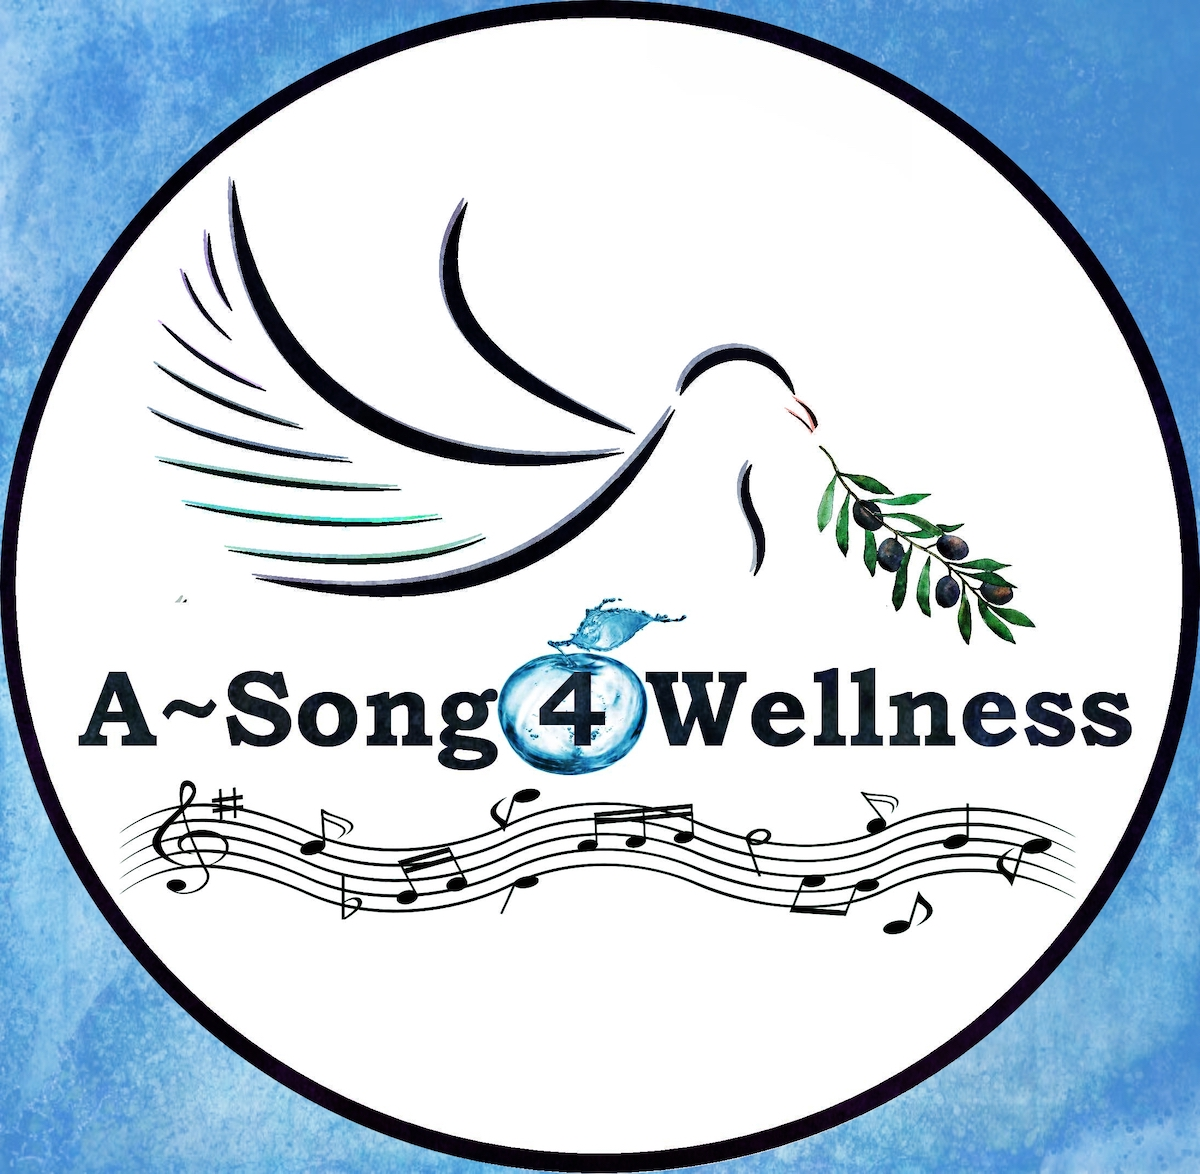 A-Song4Wellness